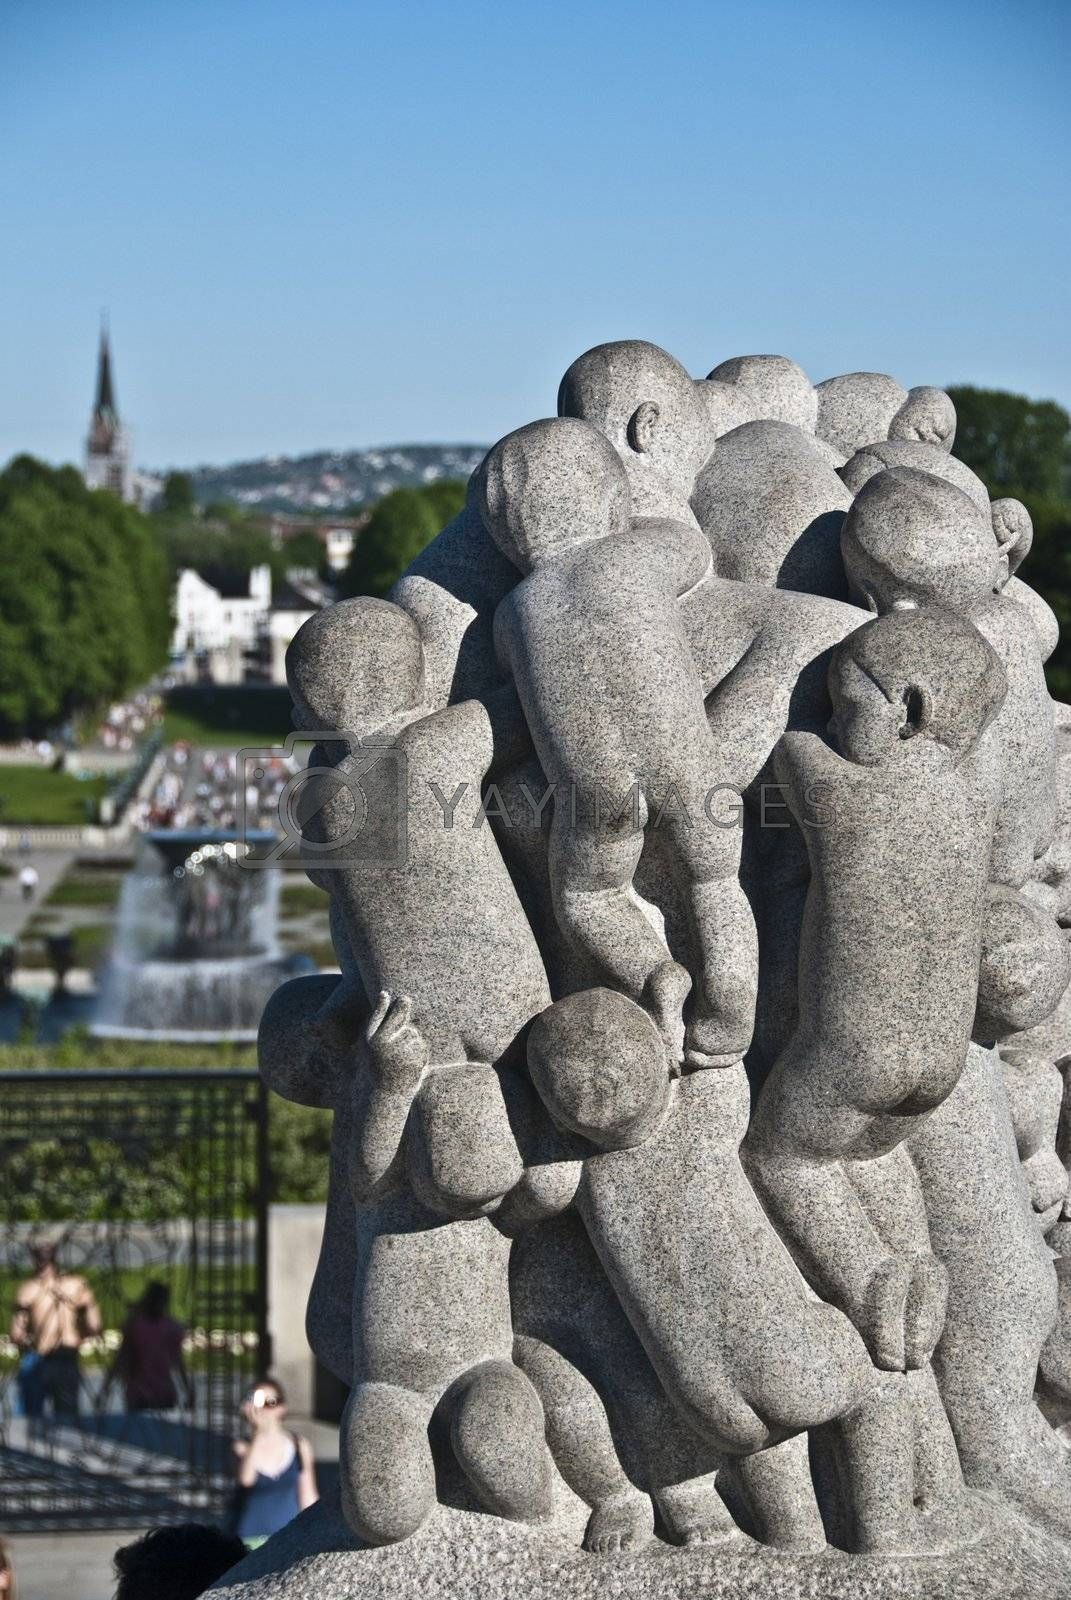 Statue in a Park of Oslo, Norway, May 2009 by jovannig